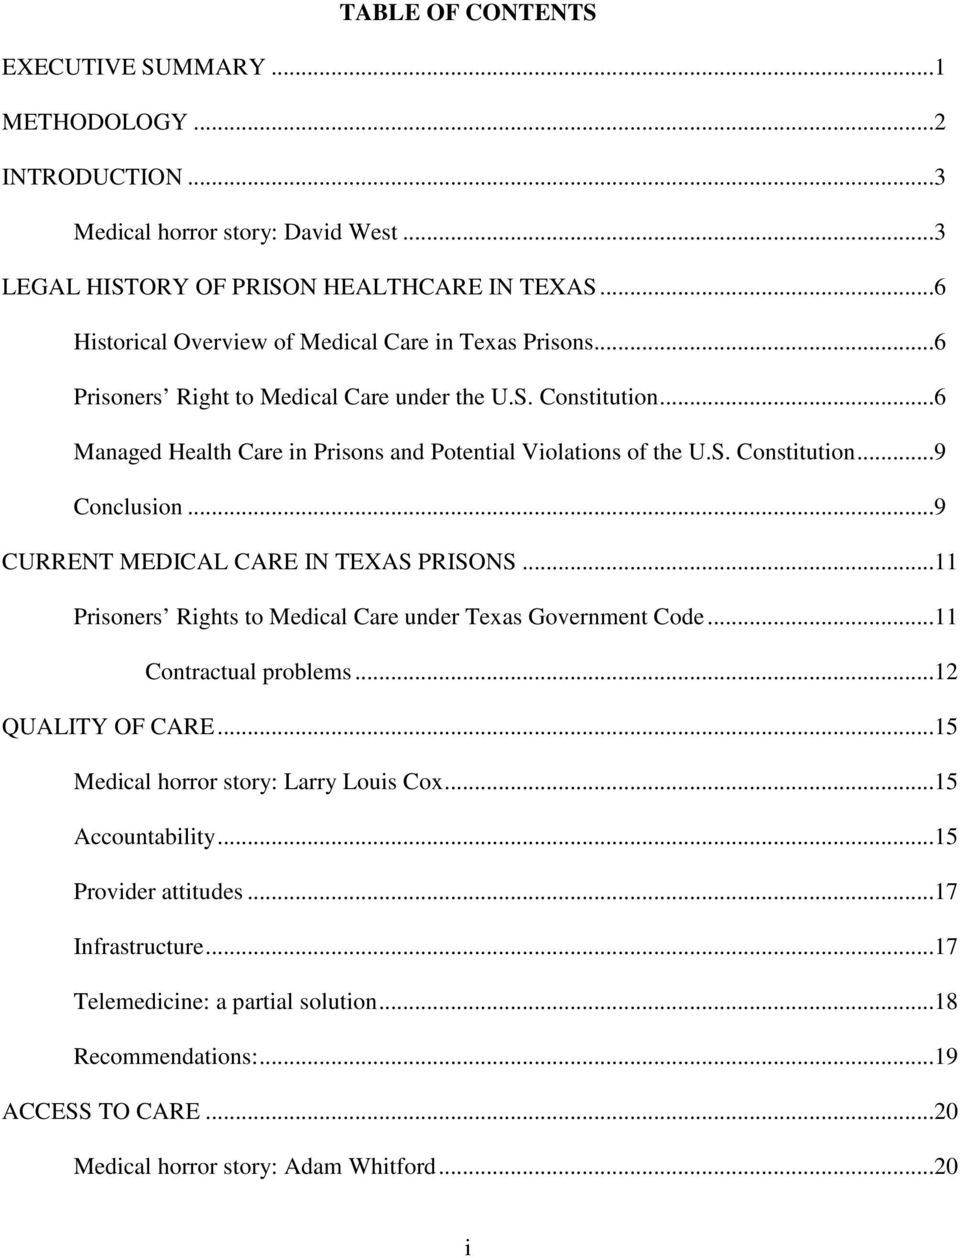 S. Constitution...9 Conclusion...9 CURRENT MEDICAL CARE IN TEXAS PRISONS...11 Prisoners Rights to Medical Care under Texas Government Code...11 Contractual problems...12 QUALITY OF CARE.